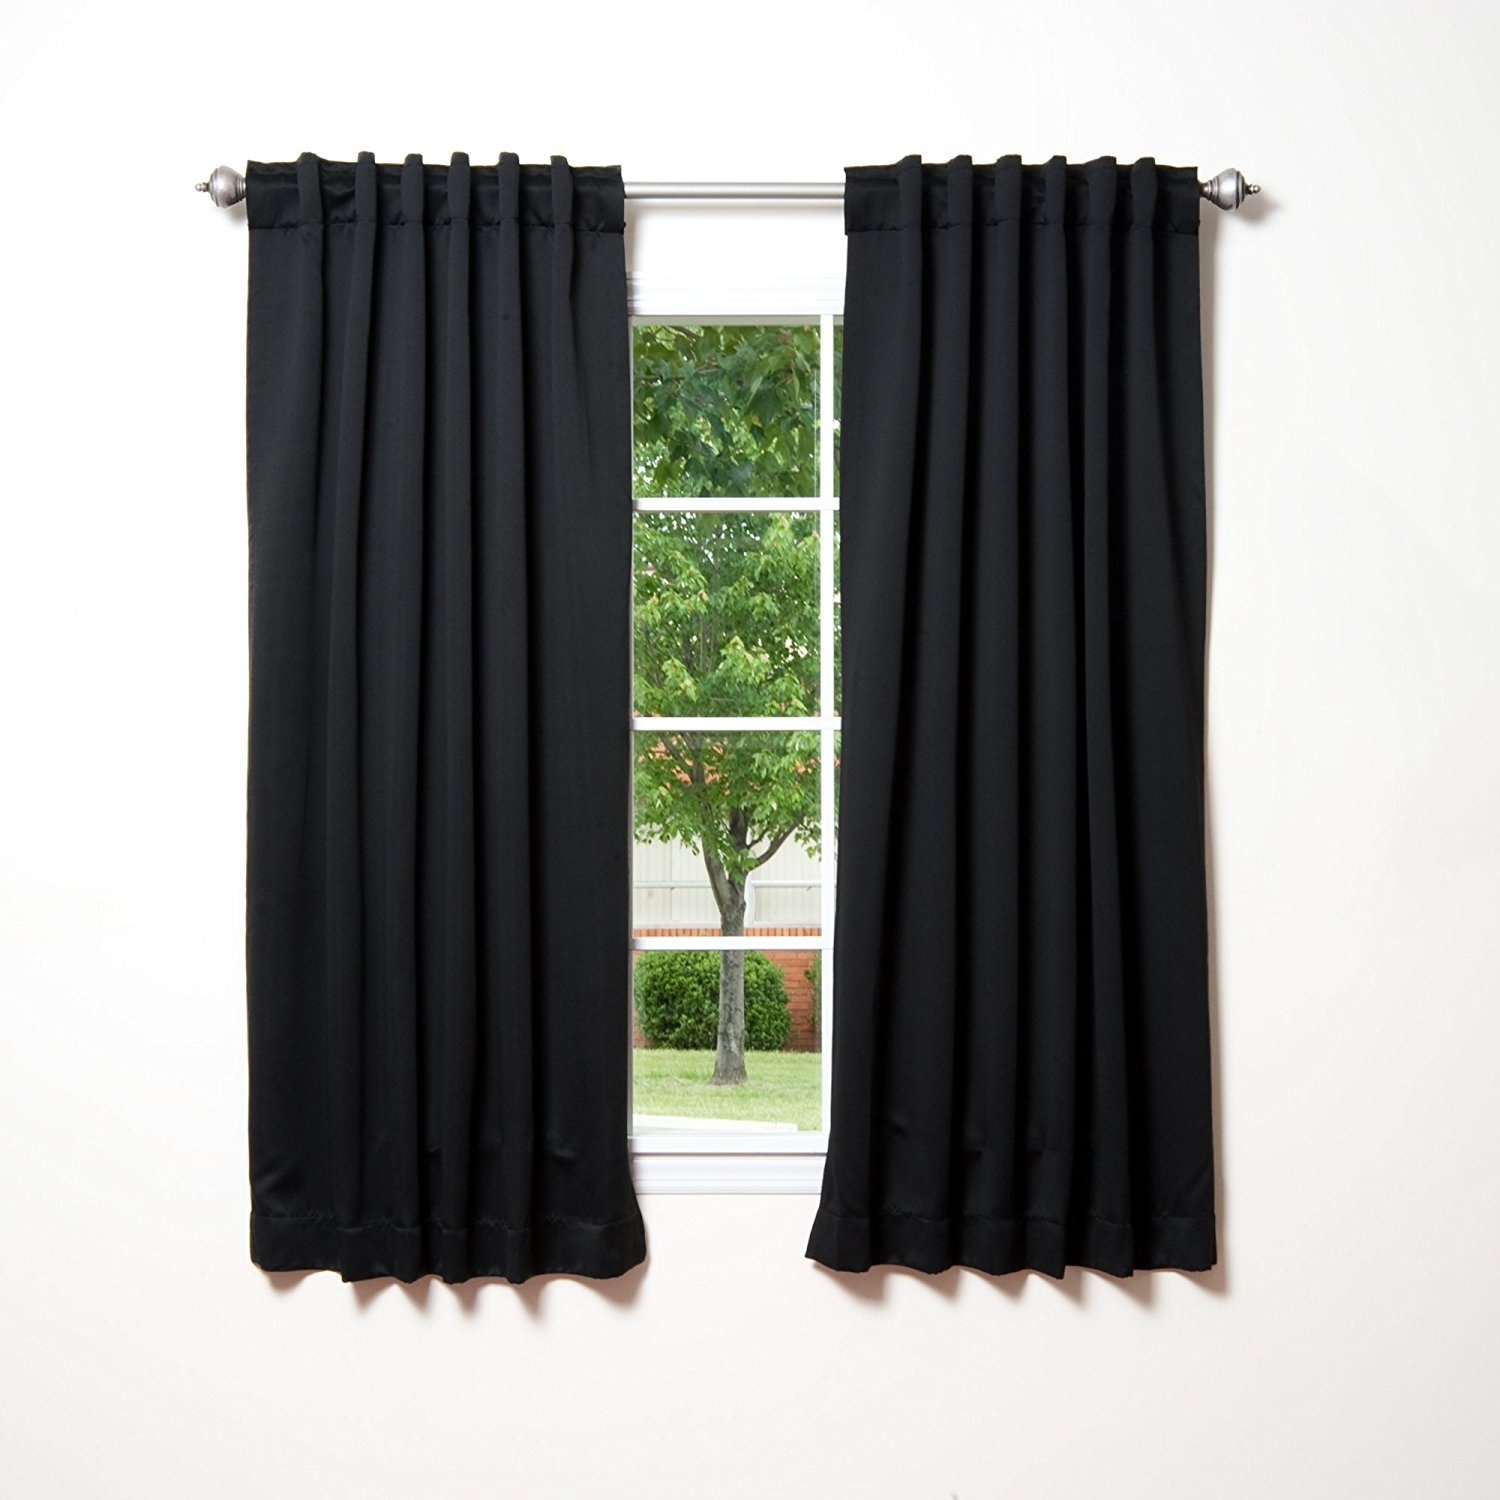 Amazon Best Home Fashion Thermal Insulated Blackout Curtains Inside Thermal Bedroom Curtains (View 6 of 15)